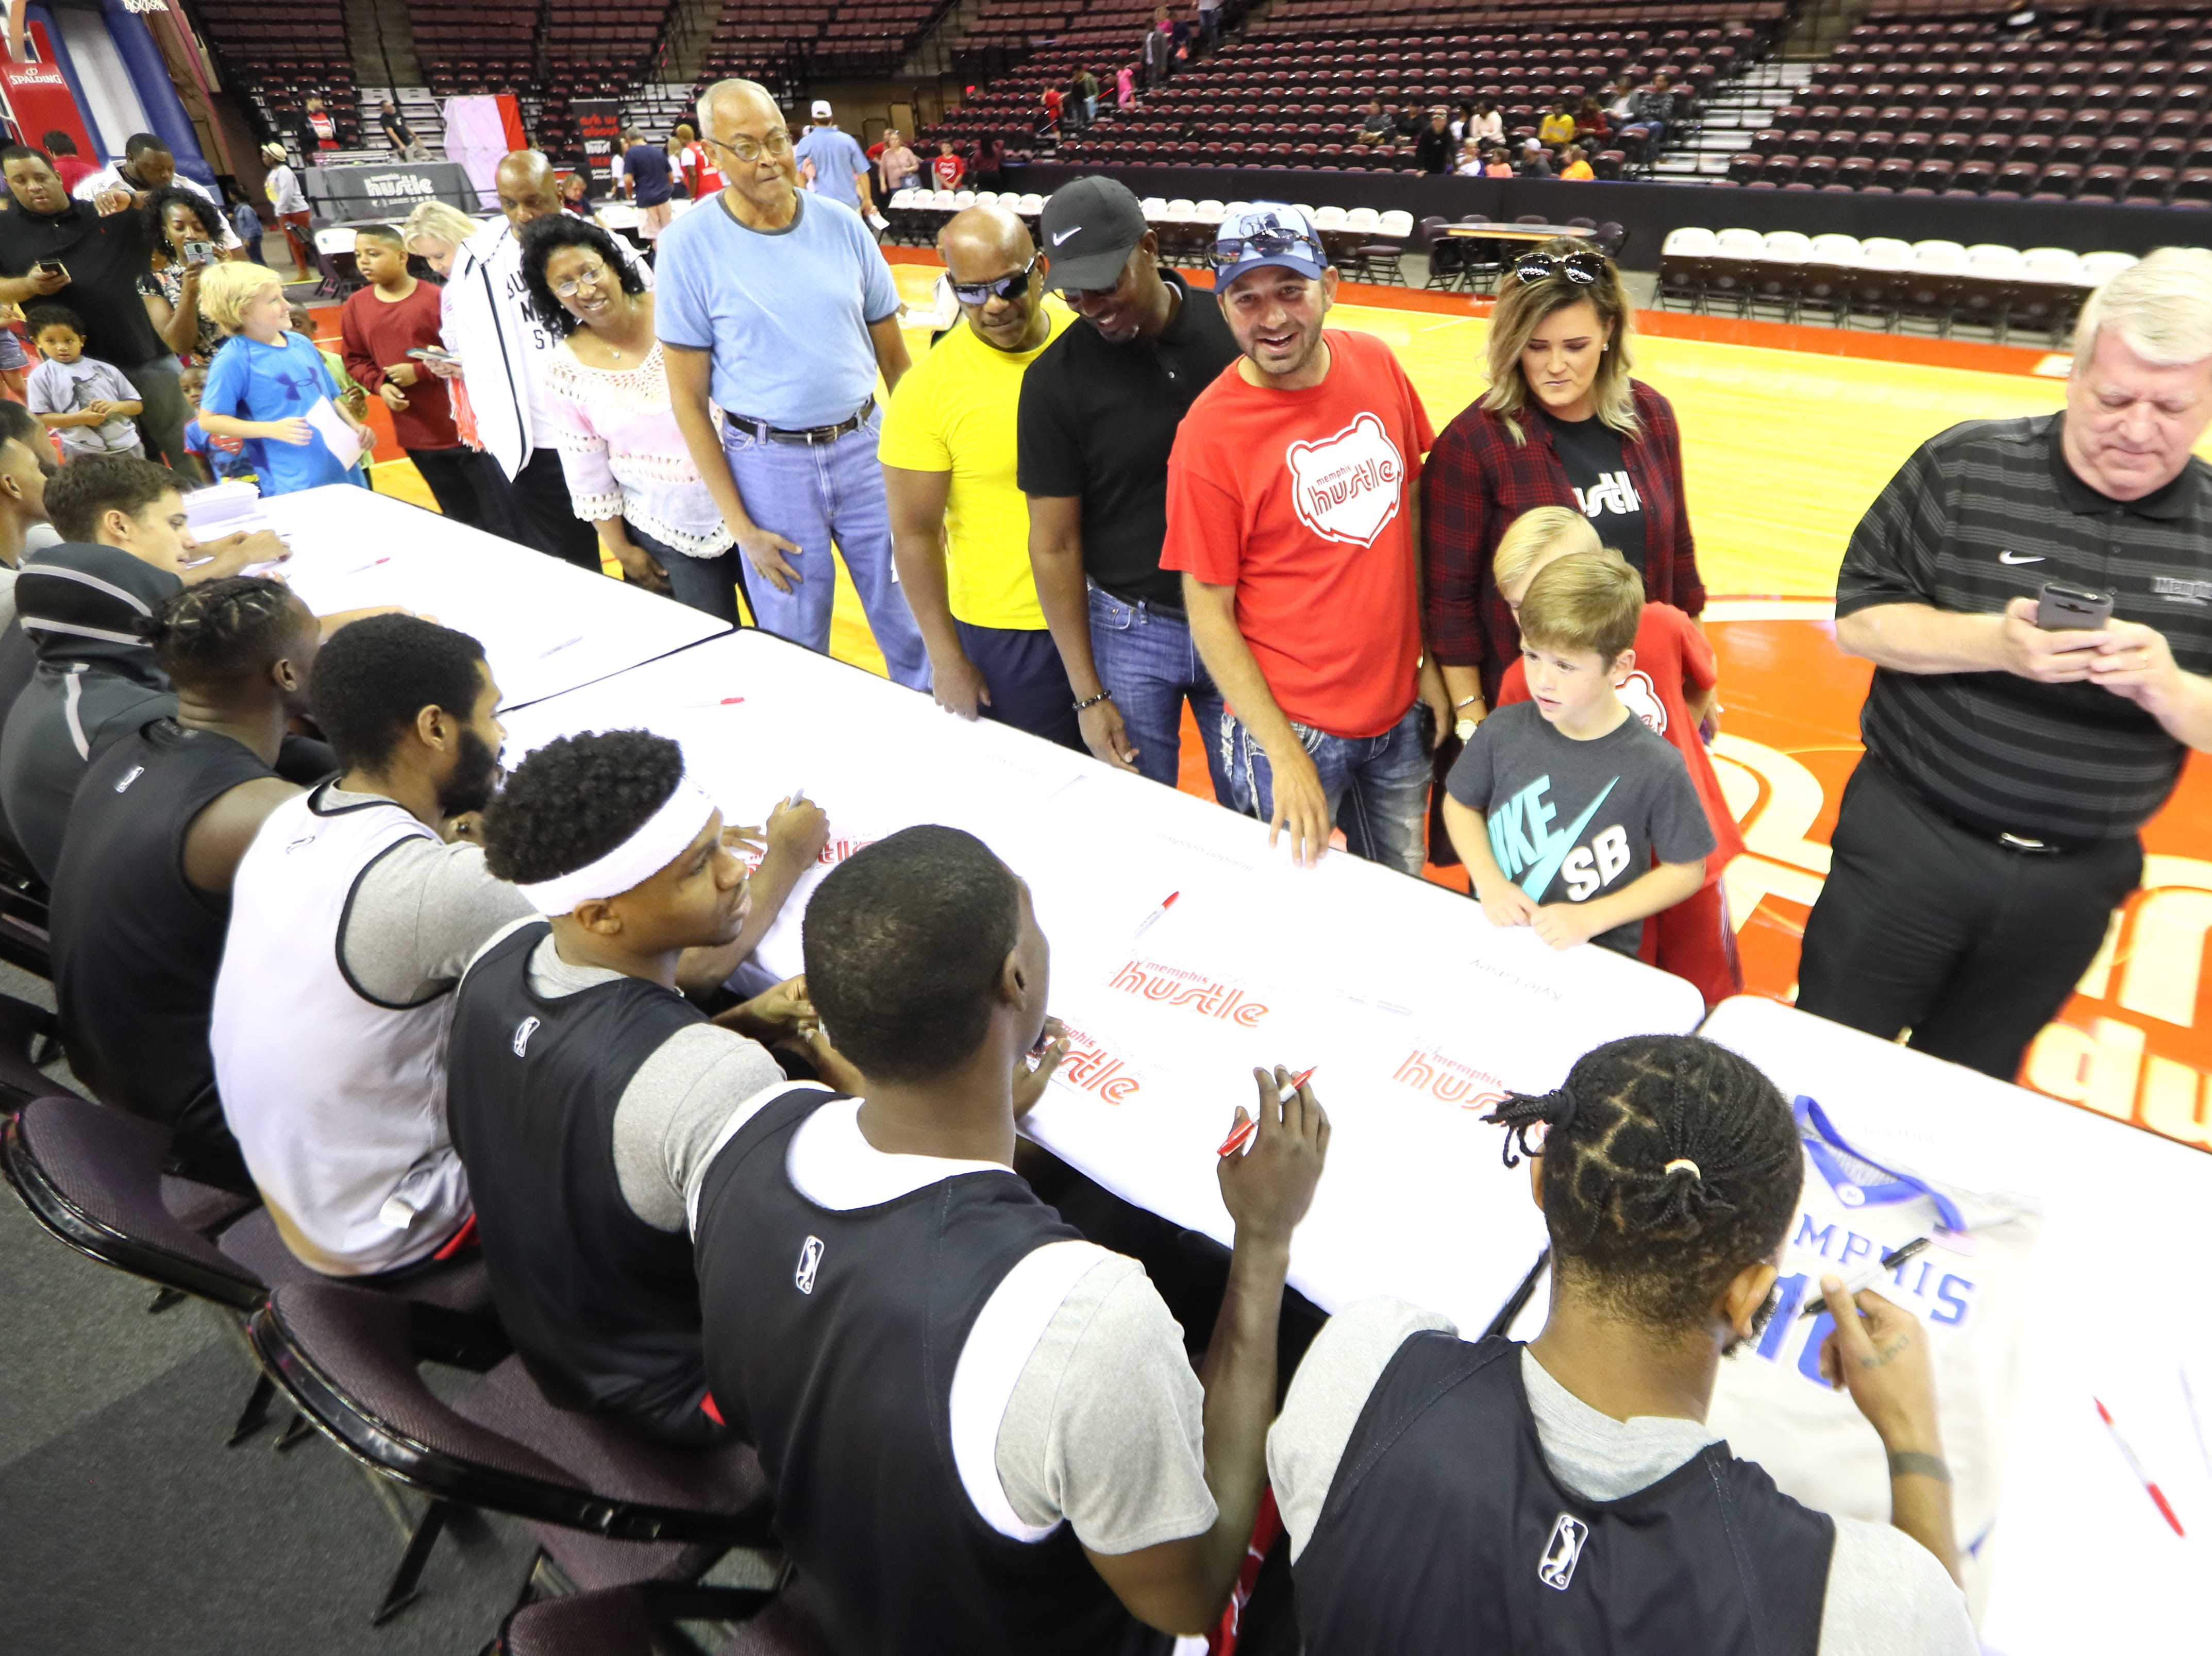 Memphis Hustle players sign autographs for fans as they host Family Fun Day at the Landers Center on Sunday, Oct. 28, 2018.